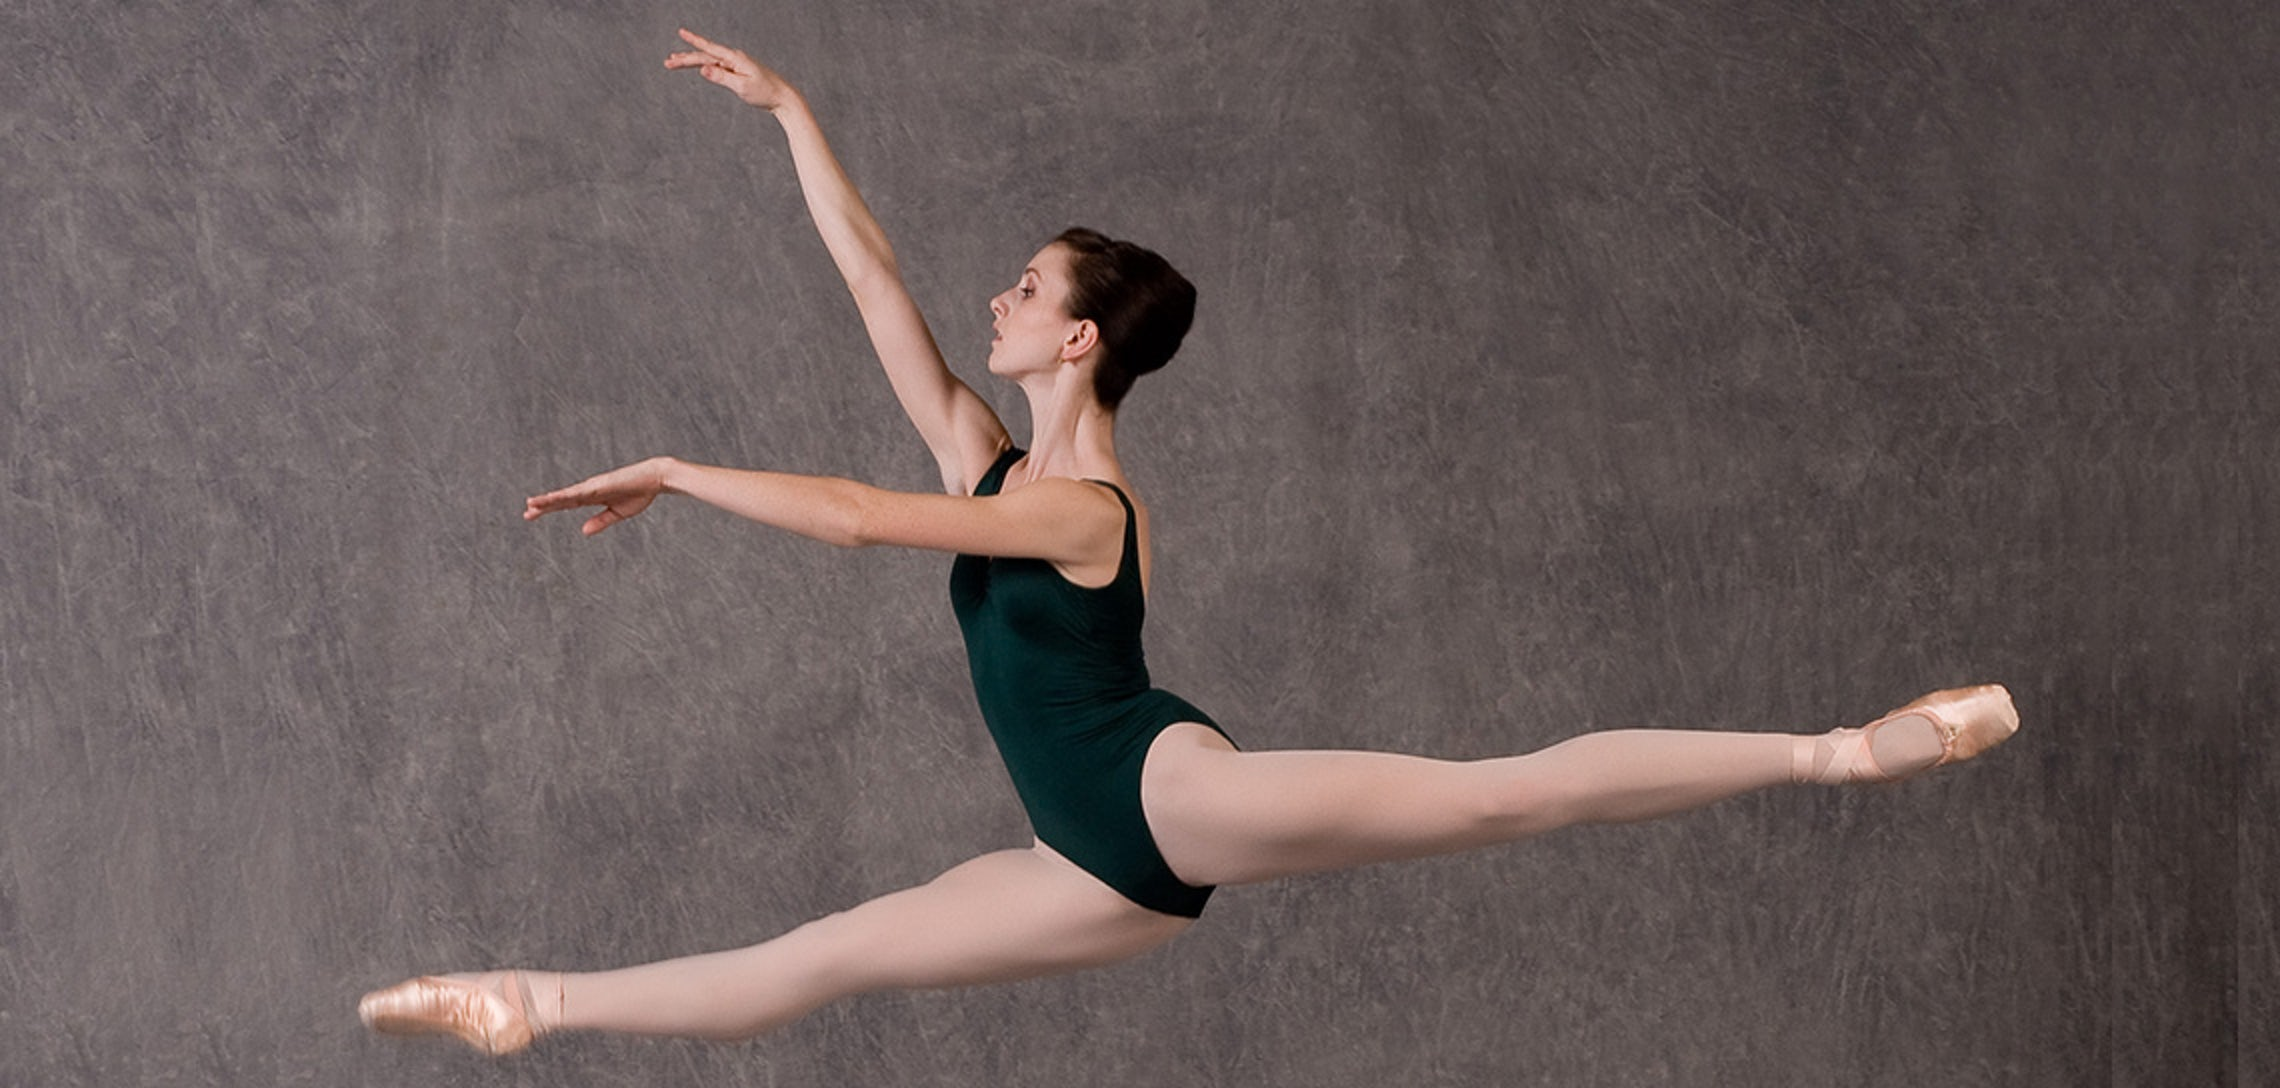 Shake It Off Ballerina Shelby Williams Puts Perfection In Its Place